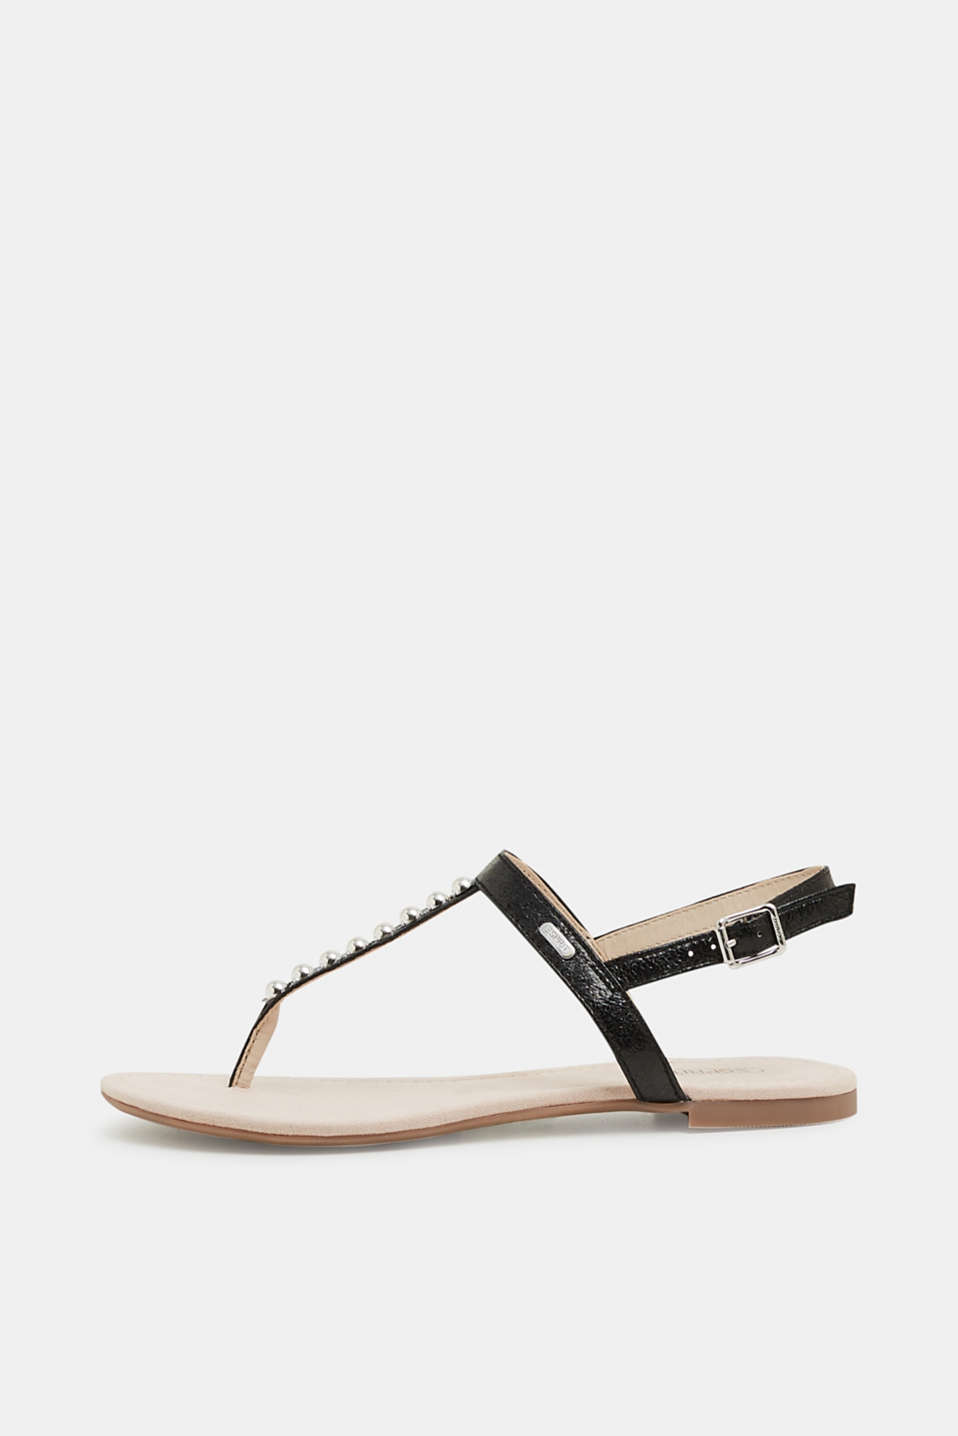 Esprit - Toe-post sandals trimmed with beads